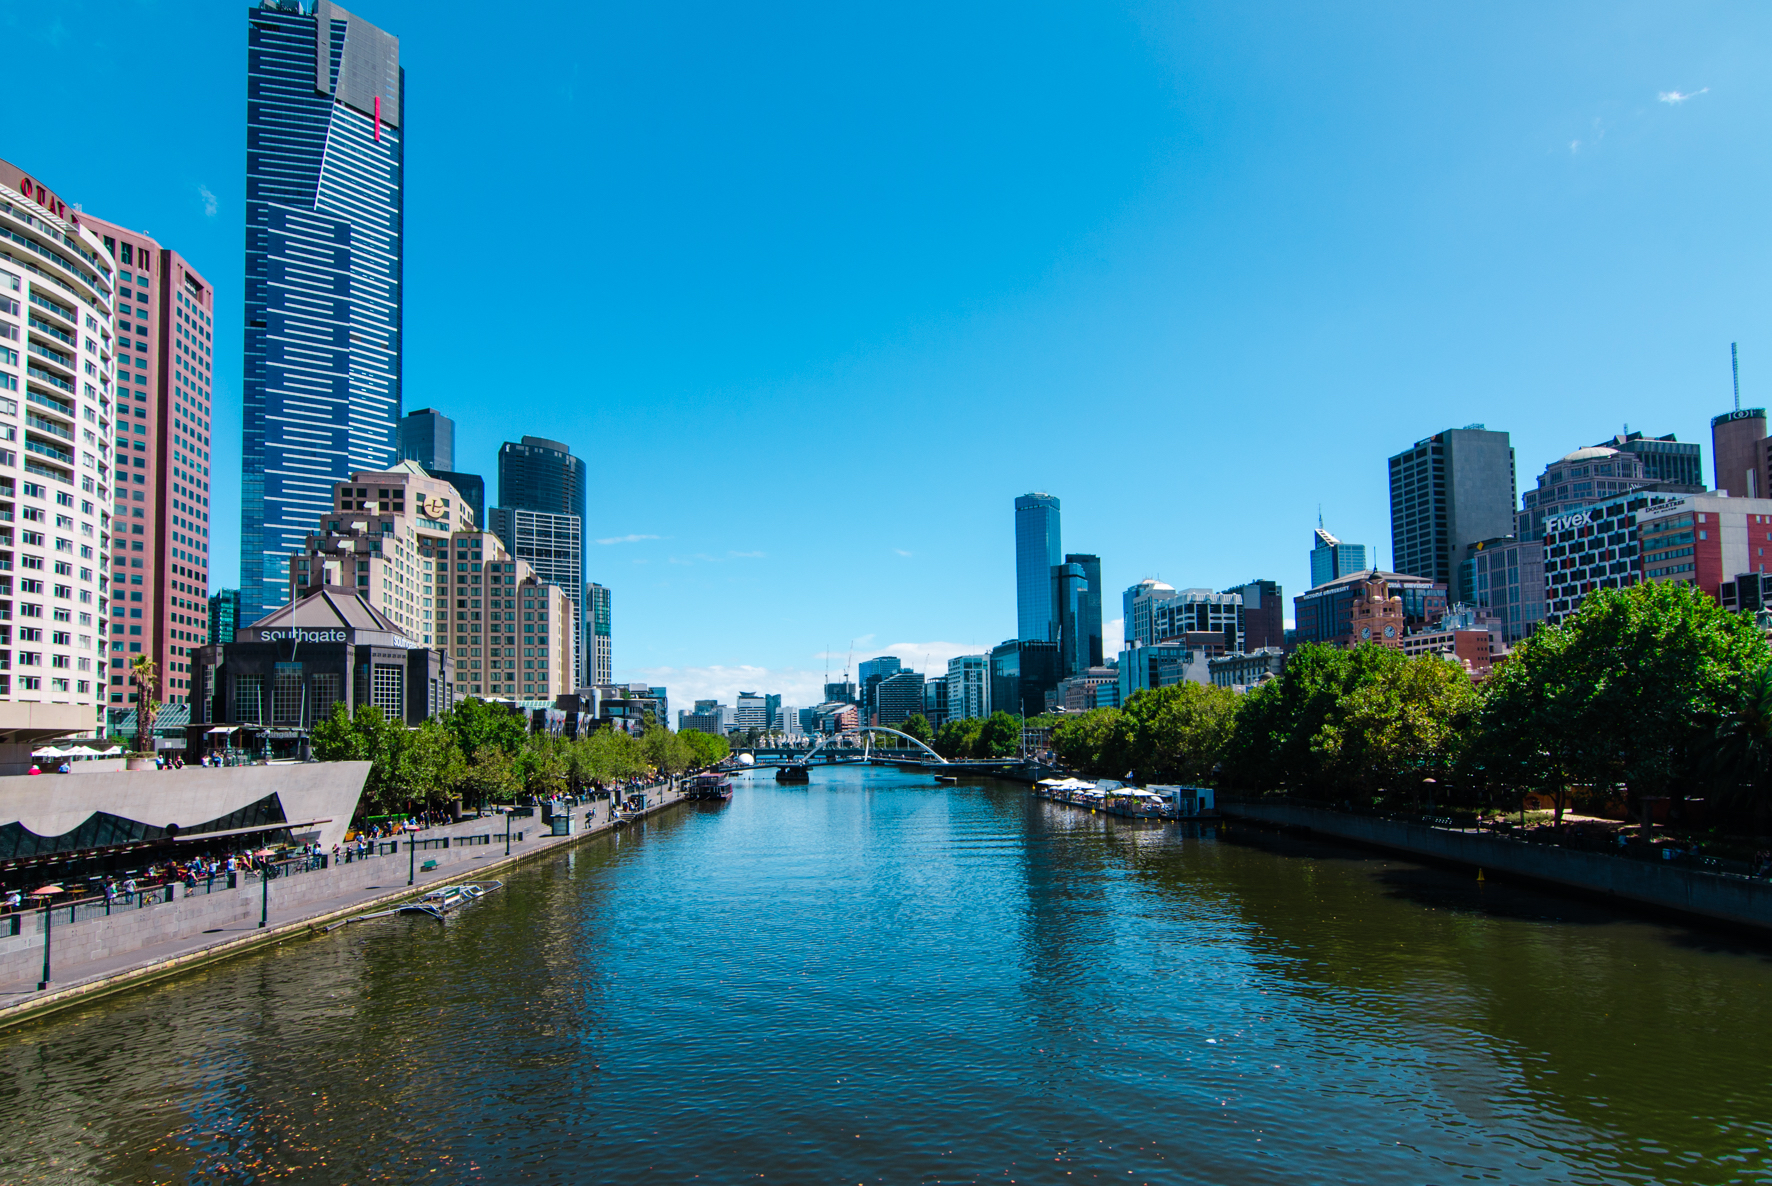 Melbourne Yarra River City Buildings Street Photography